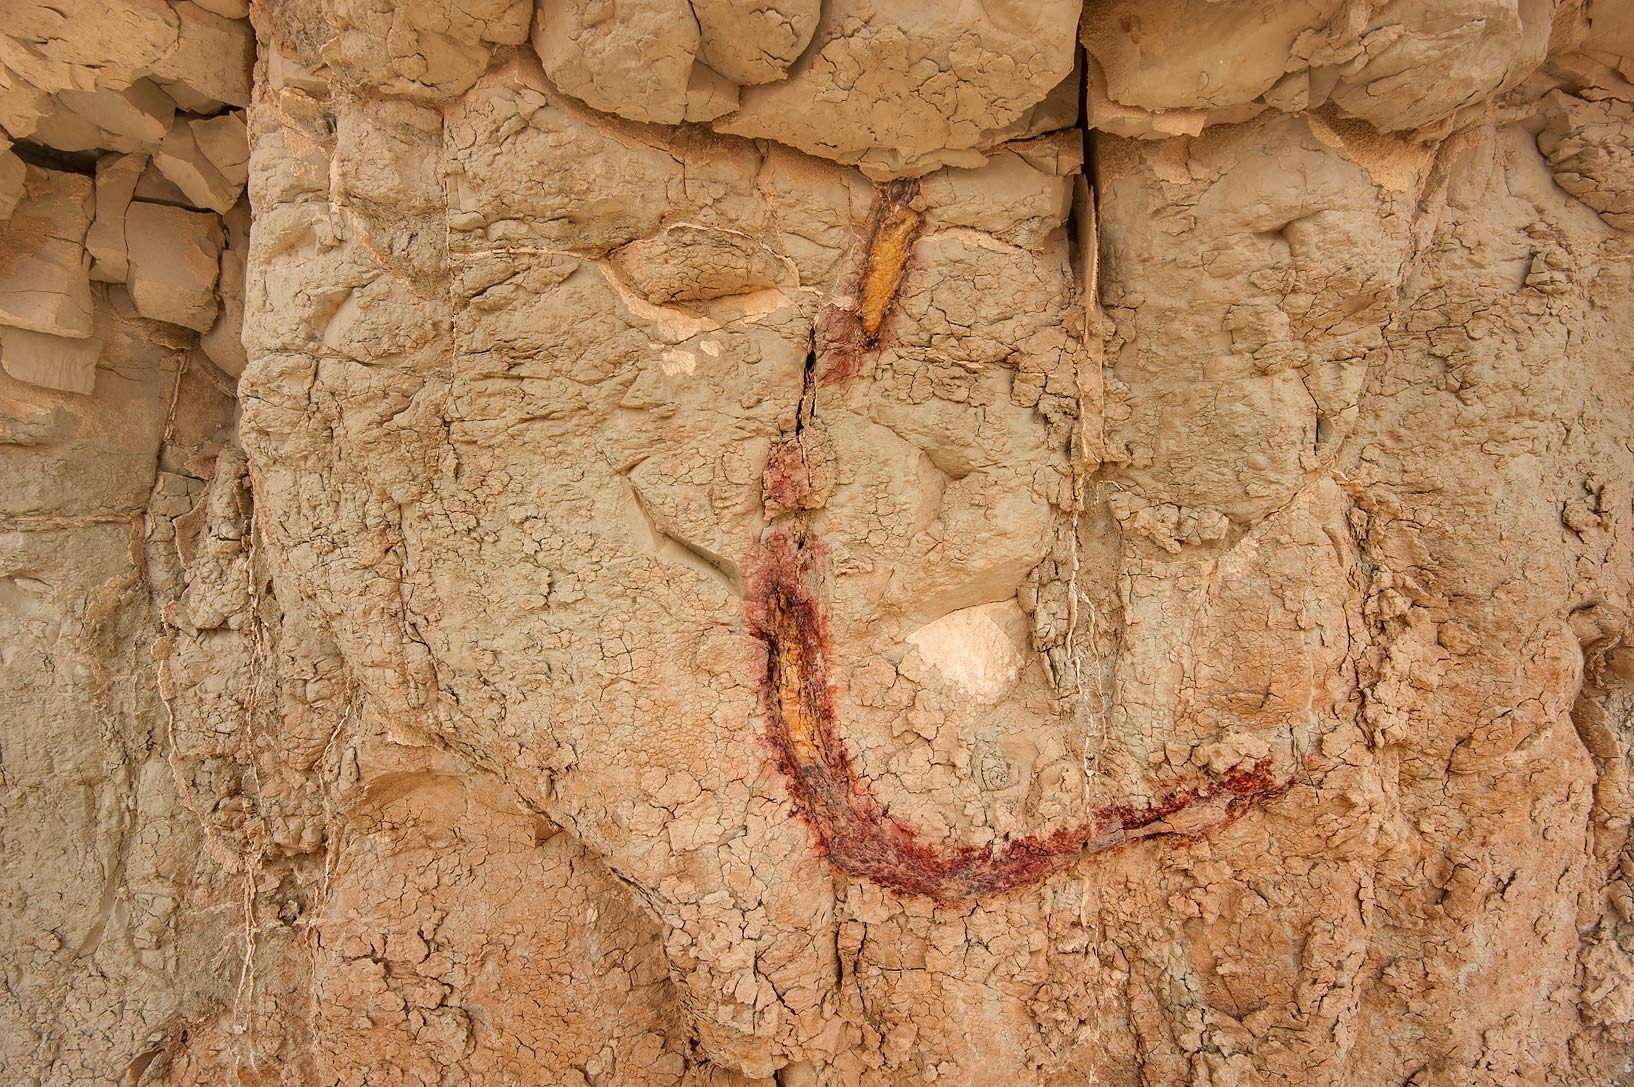 Exposed fossilized roots on limestone cliffs in...Reserve near Abu Samra. Southern Qatar